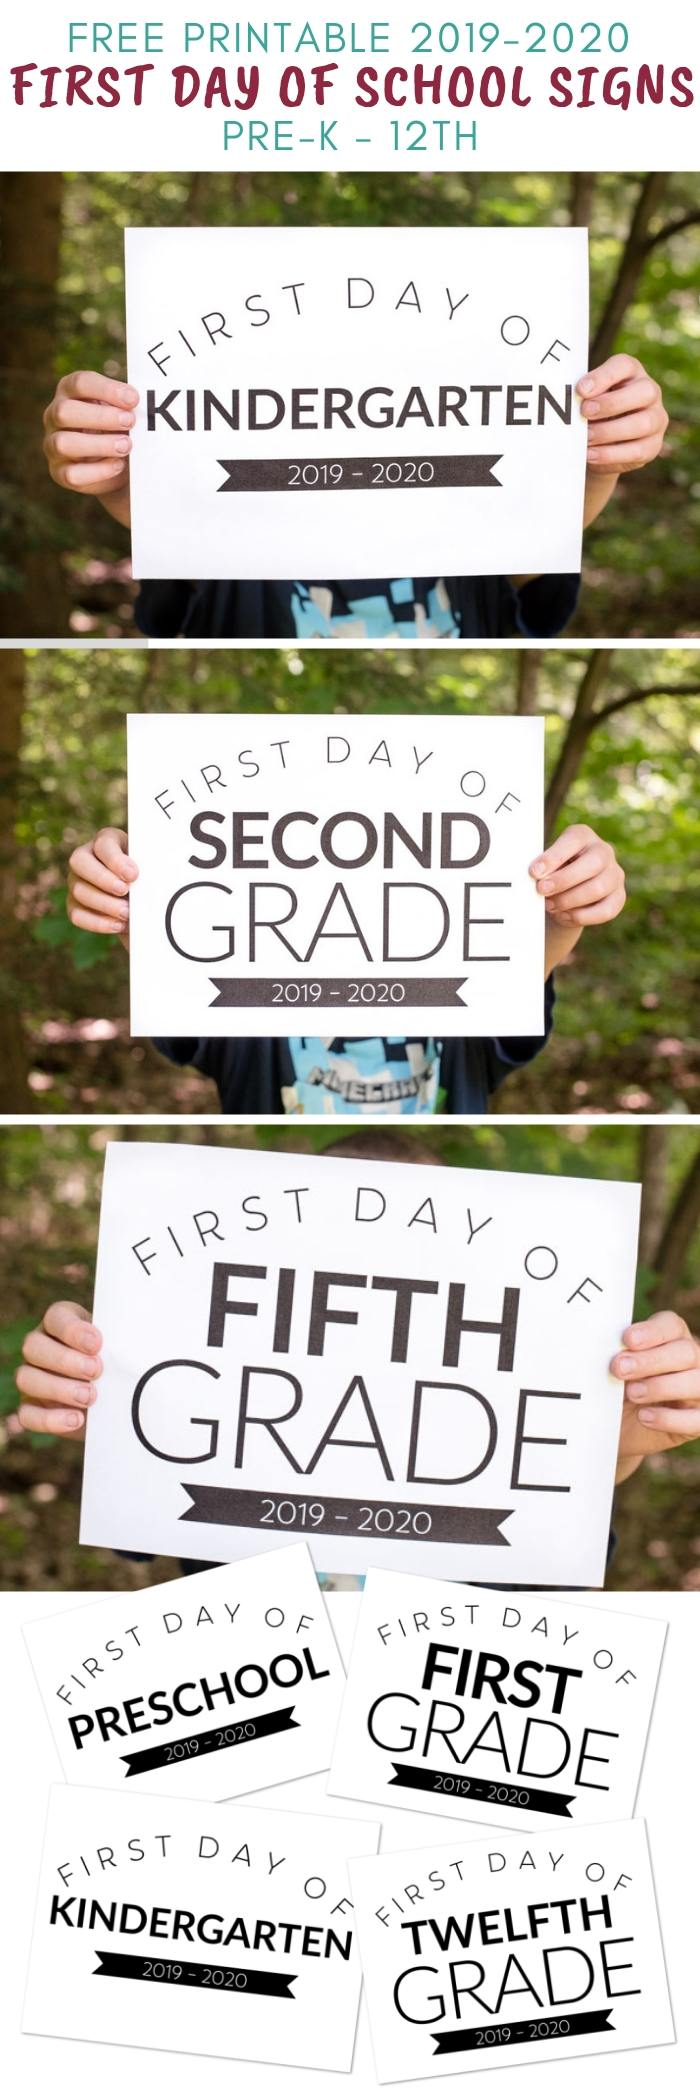 photograph relating to First Day of School Sign Printable named Totally free Printable Initial Working day of College Indicators for All Grades